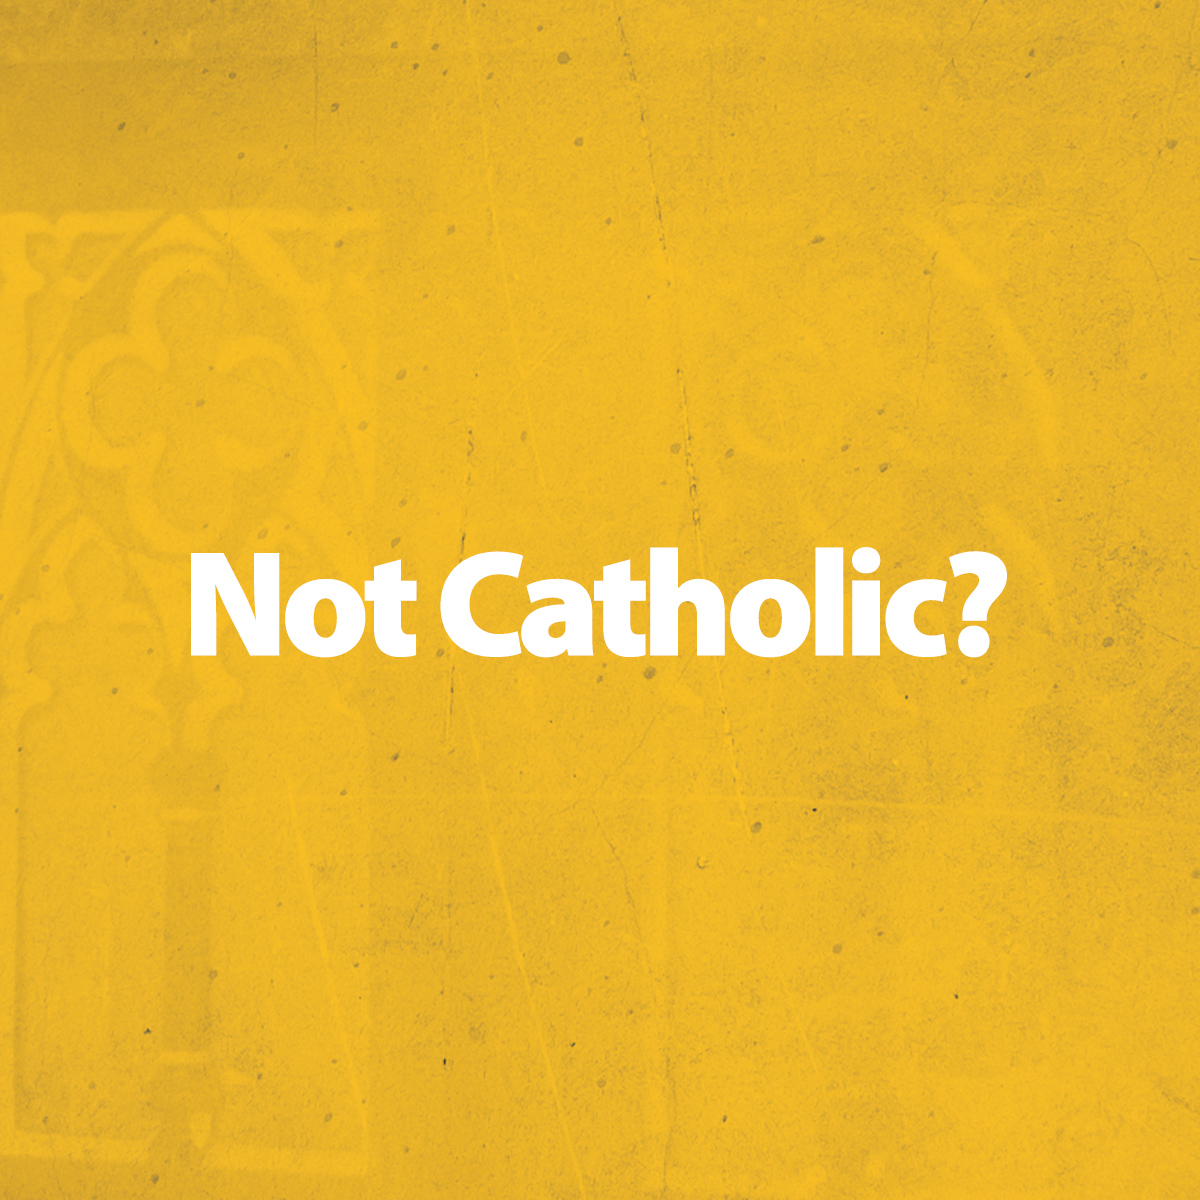 A Welcome to Those Who Are Not Catholic